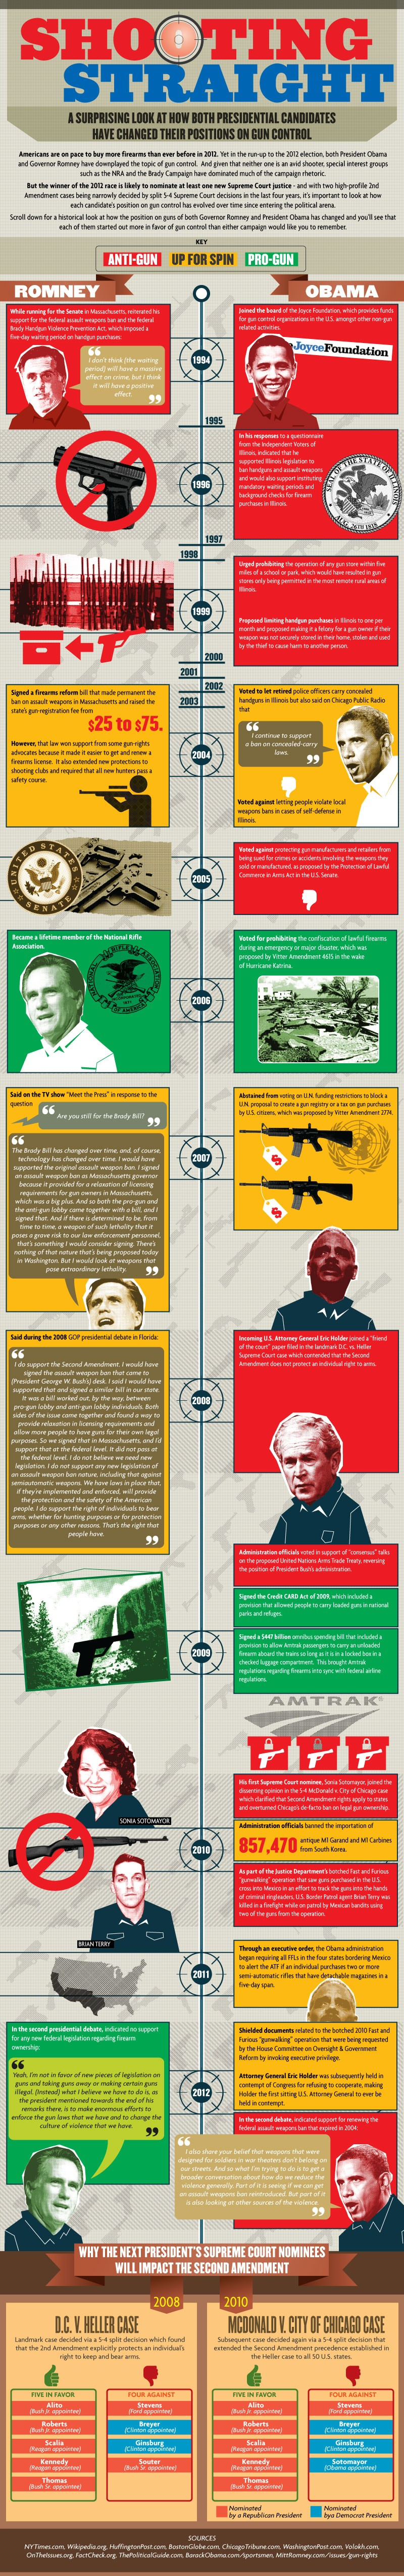 Visualizing The Gun Control Flip Flops Of Both Presidential Candidates Shooting Straight Romney vs Obama On Gun Control